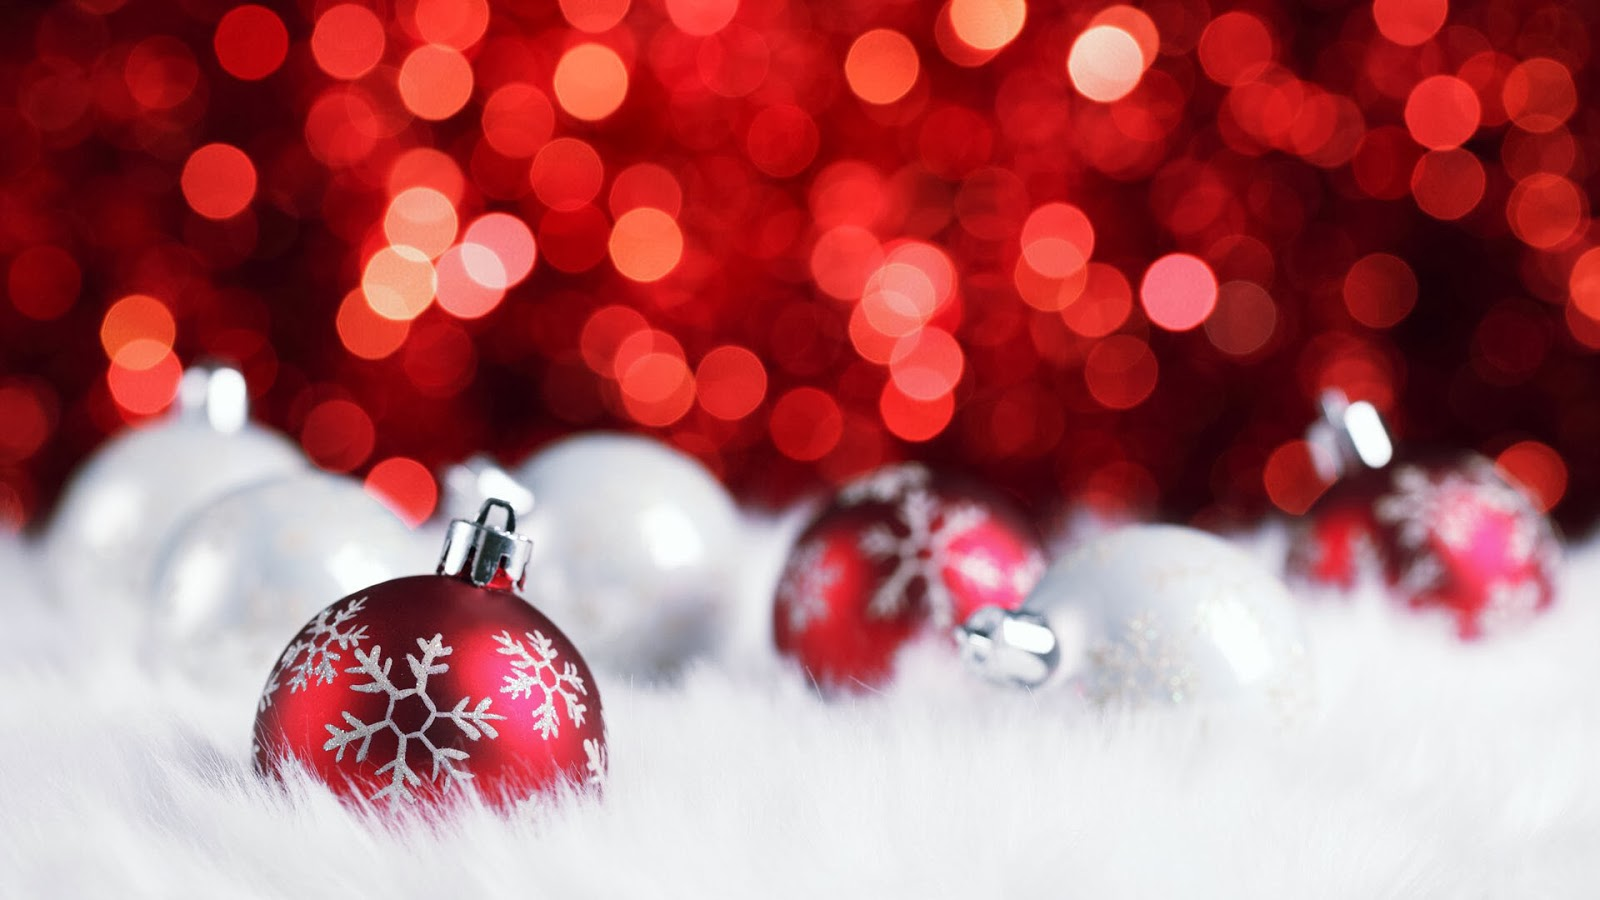 Christmas Scenes Wallpapers Backgrounds 1600x900